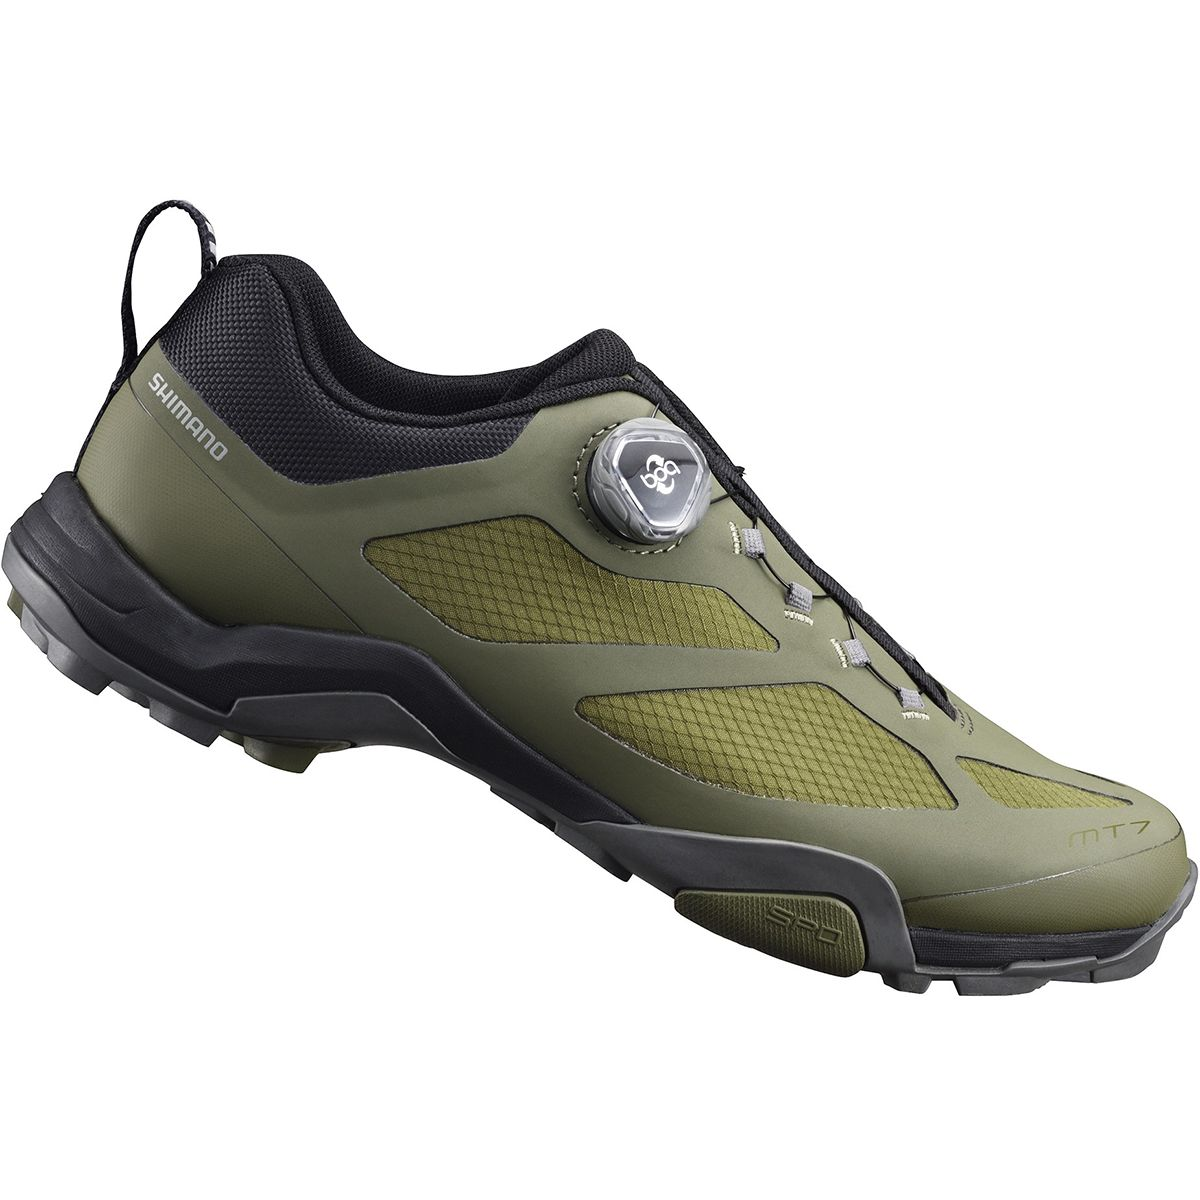 SH-MT7 MTB/touring shoes